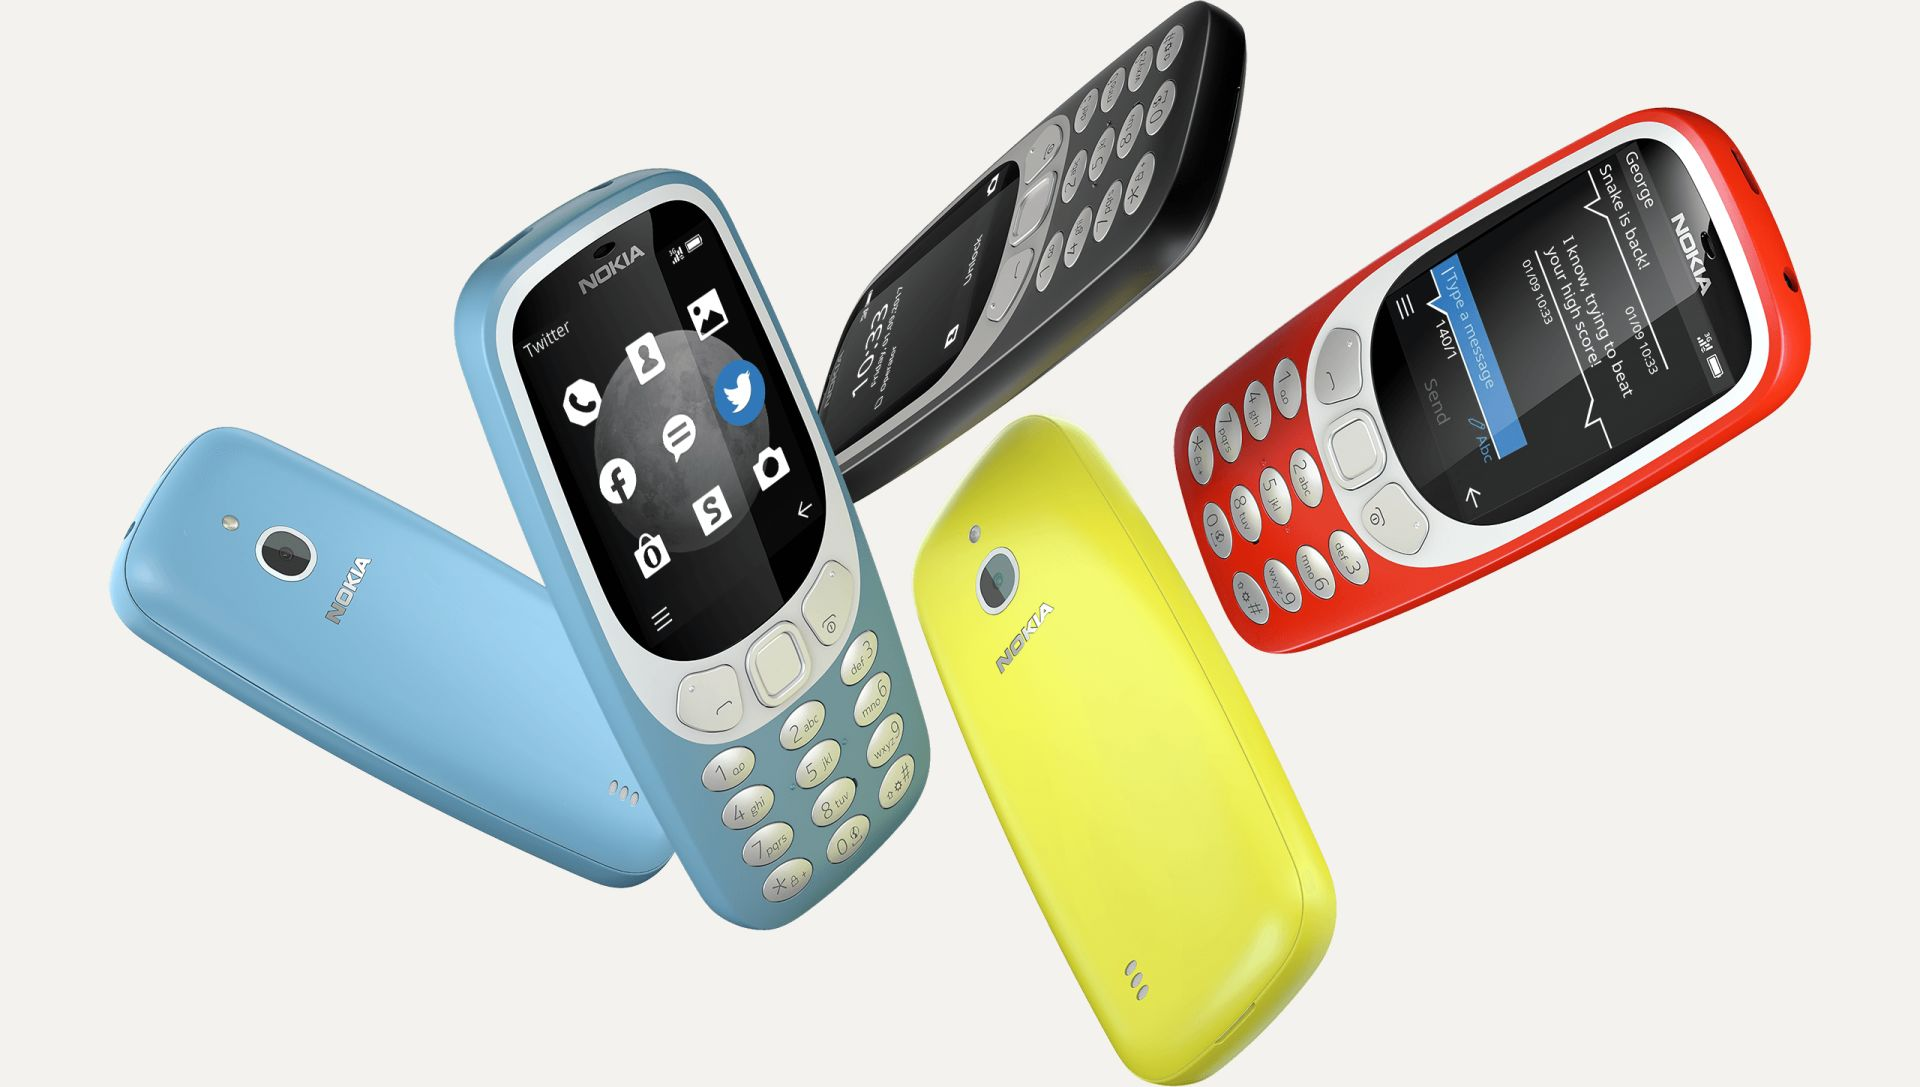 NOKIA 3310 3G SS CHARCOAL-2-1-4